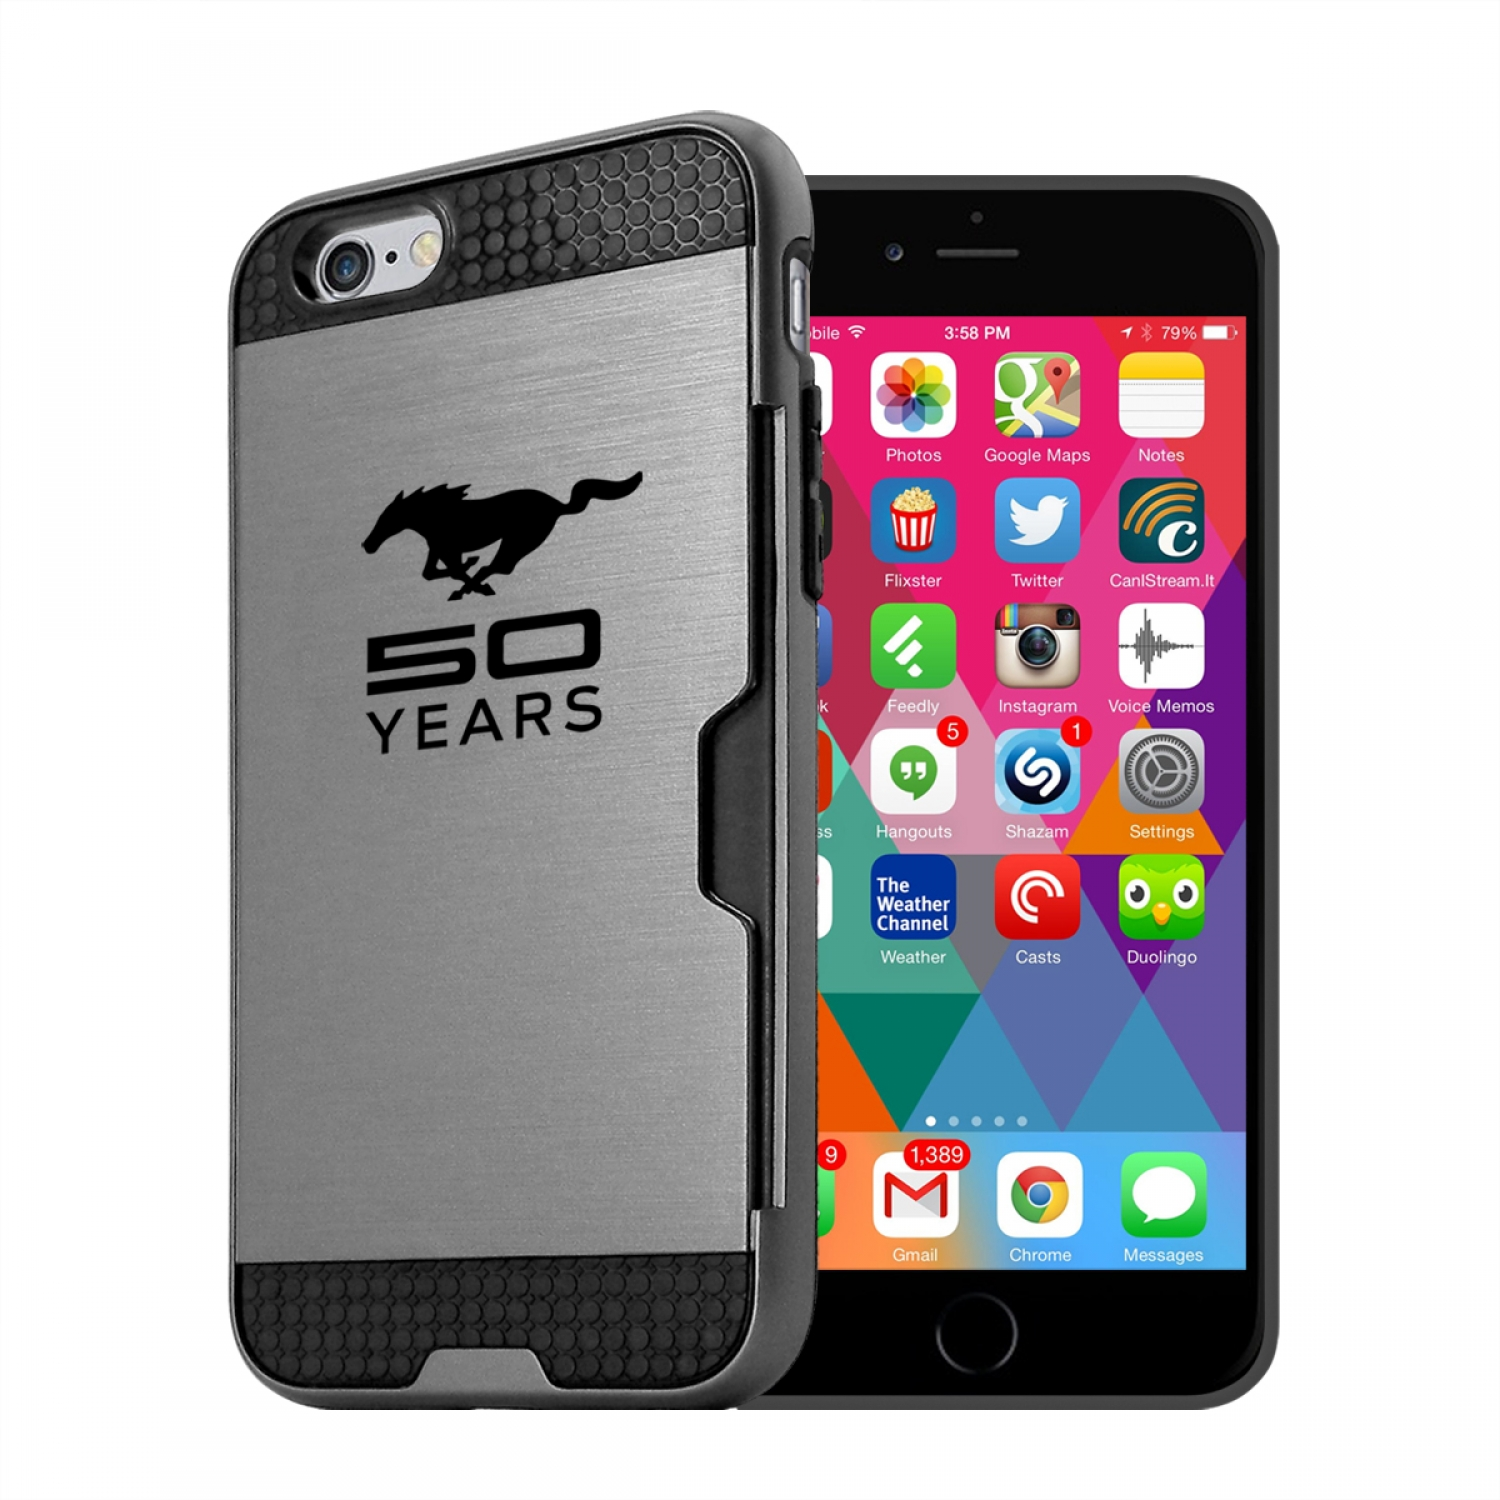 Ford Mustang 50 Years iPhone 6 6s Ultra Thin TPU Silver Phone Case with Credit Card Slot Wallet